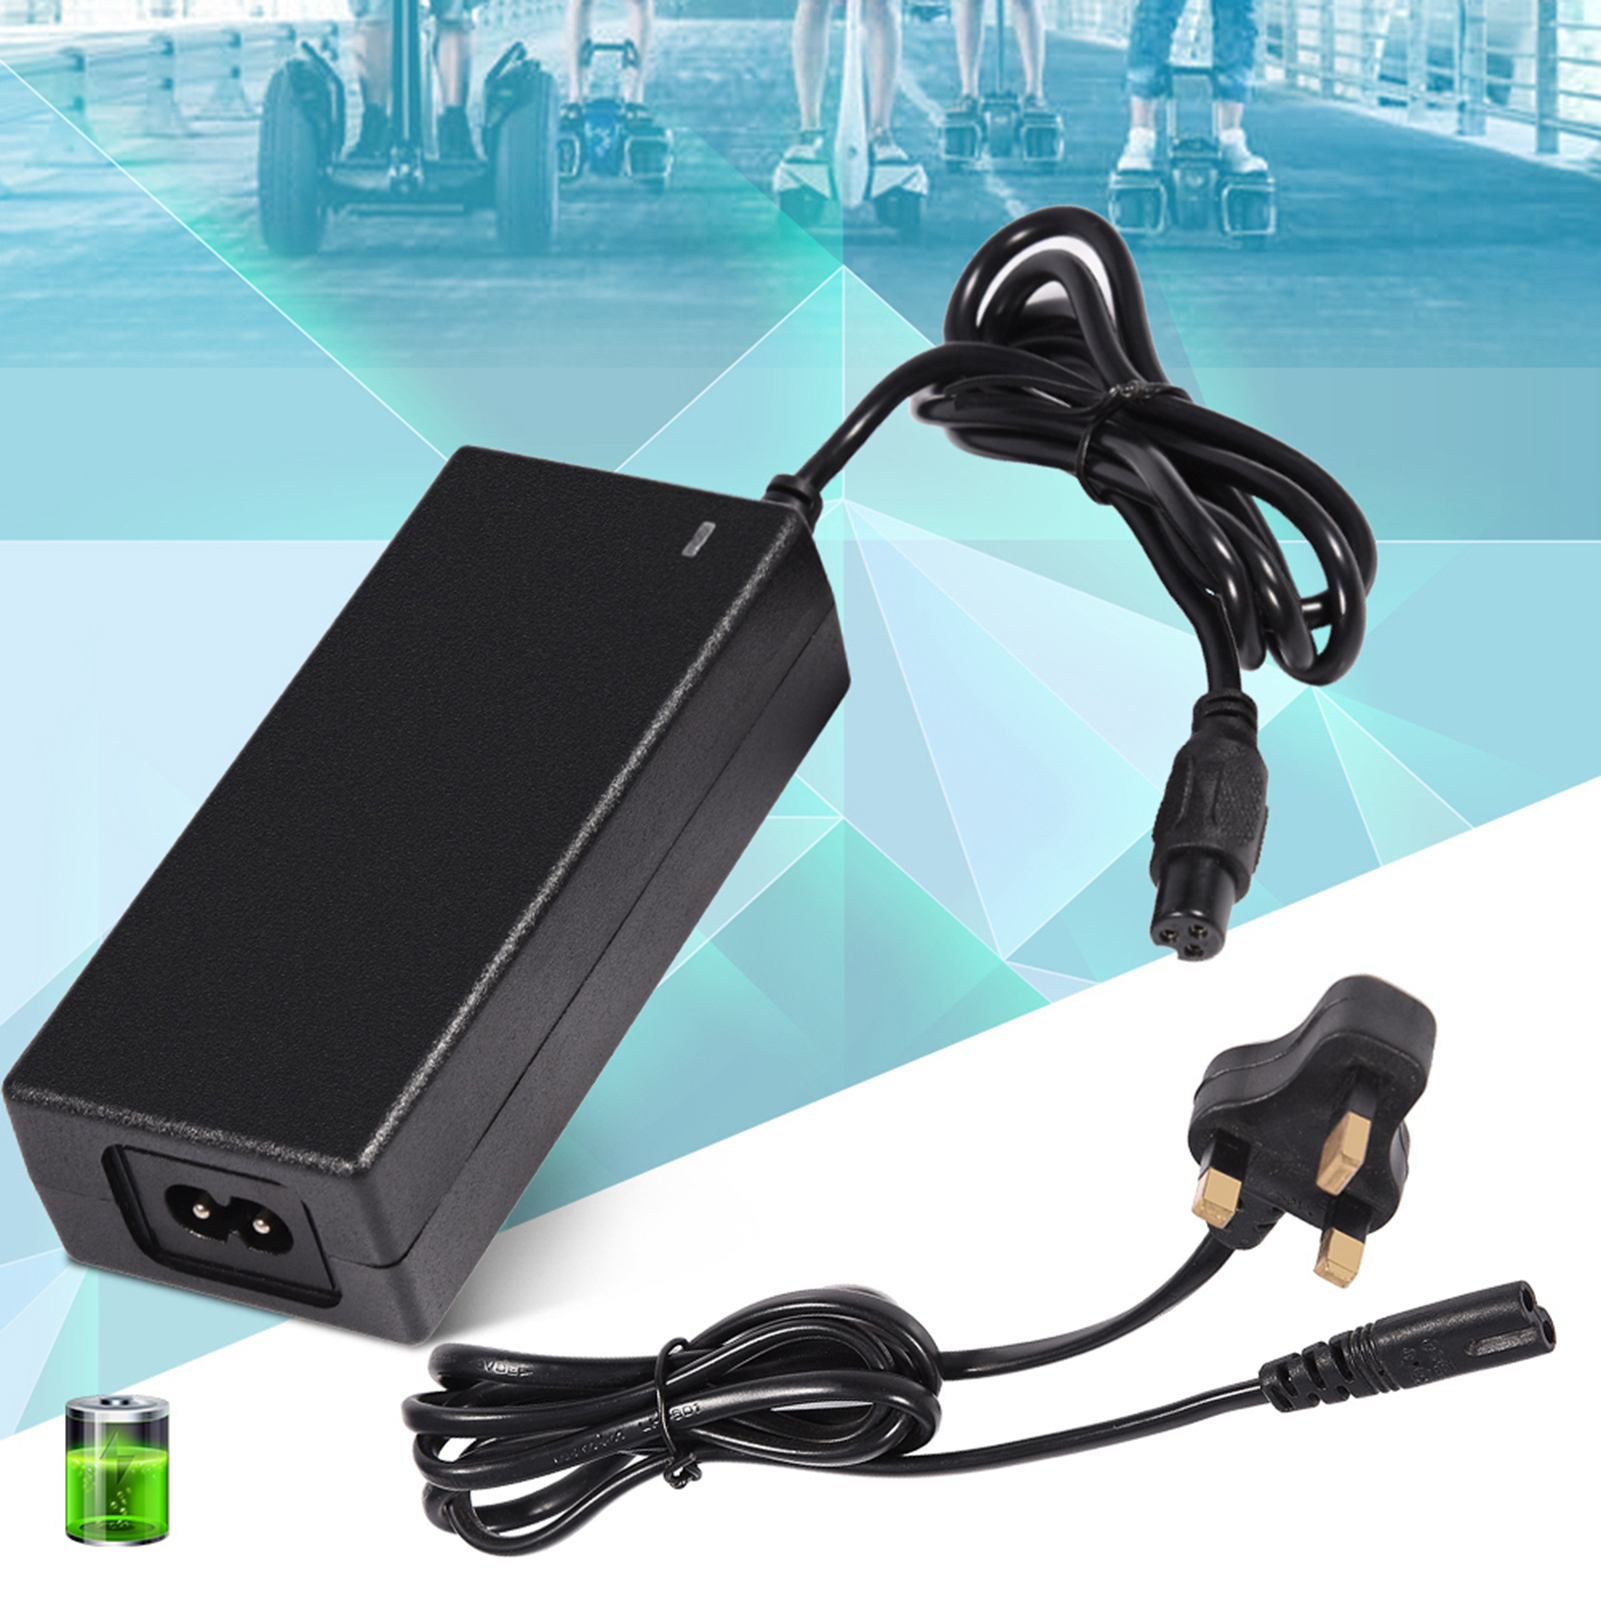 42V-2A-Universal-Battery-Charger-for-Hoverboard-Smart-Balance-Scooter-Hoverboard thumbnail 14